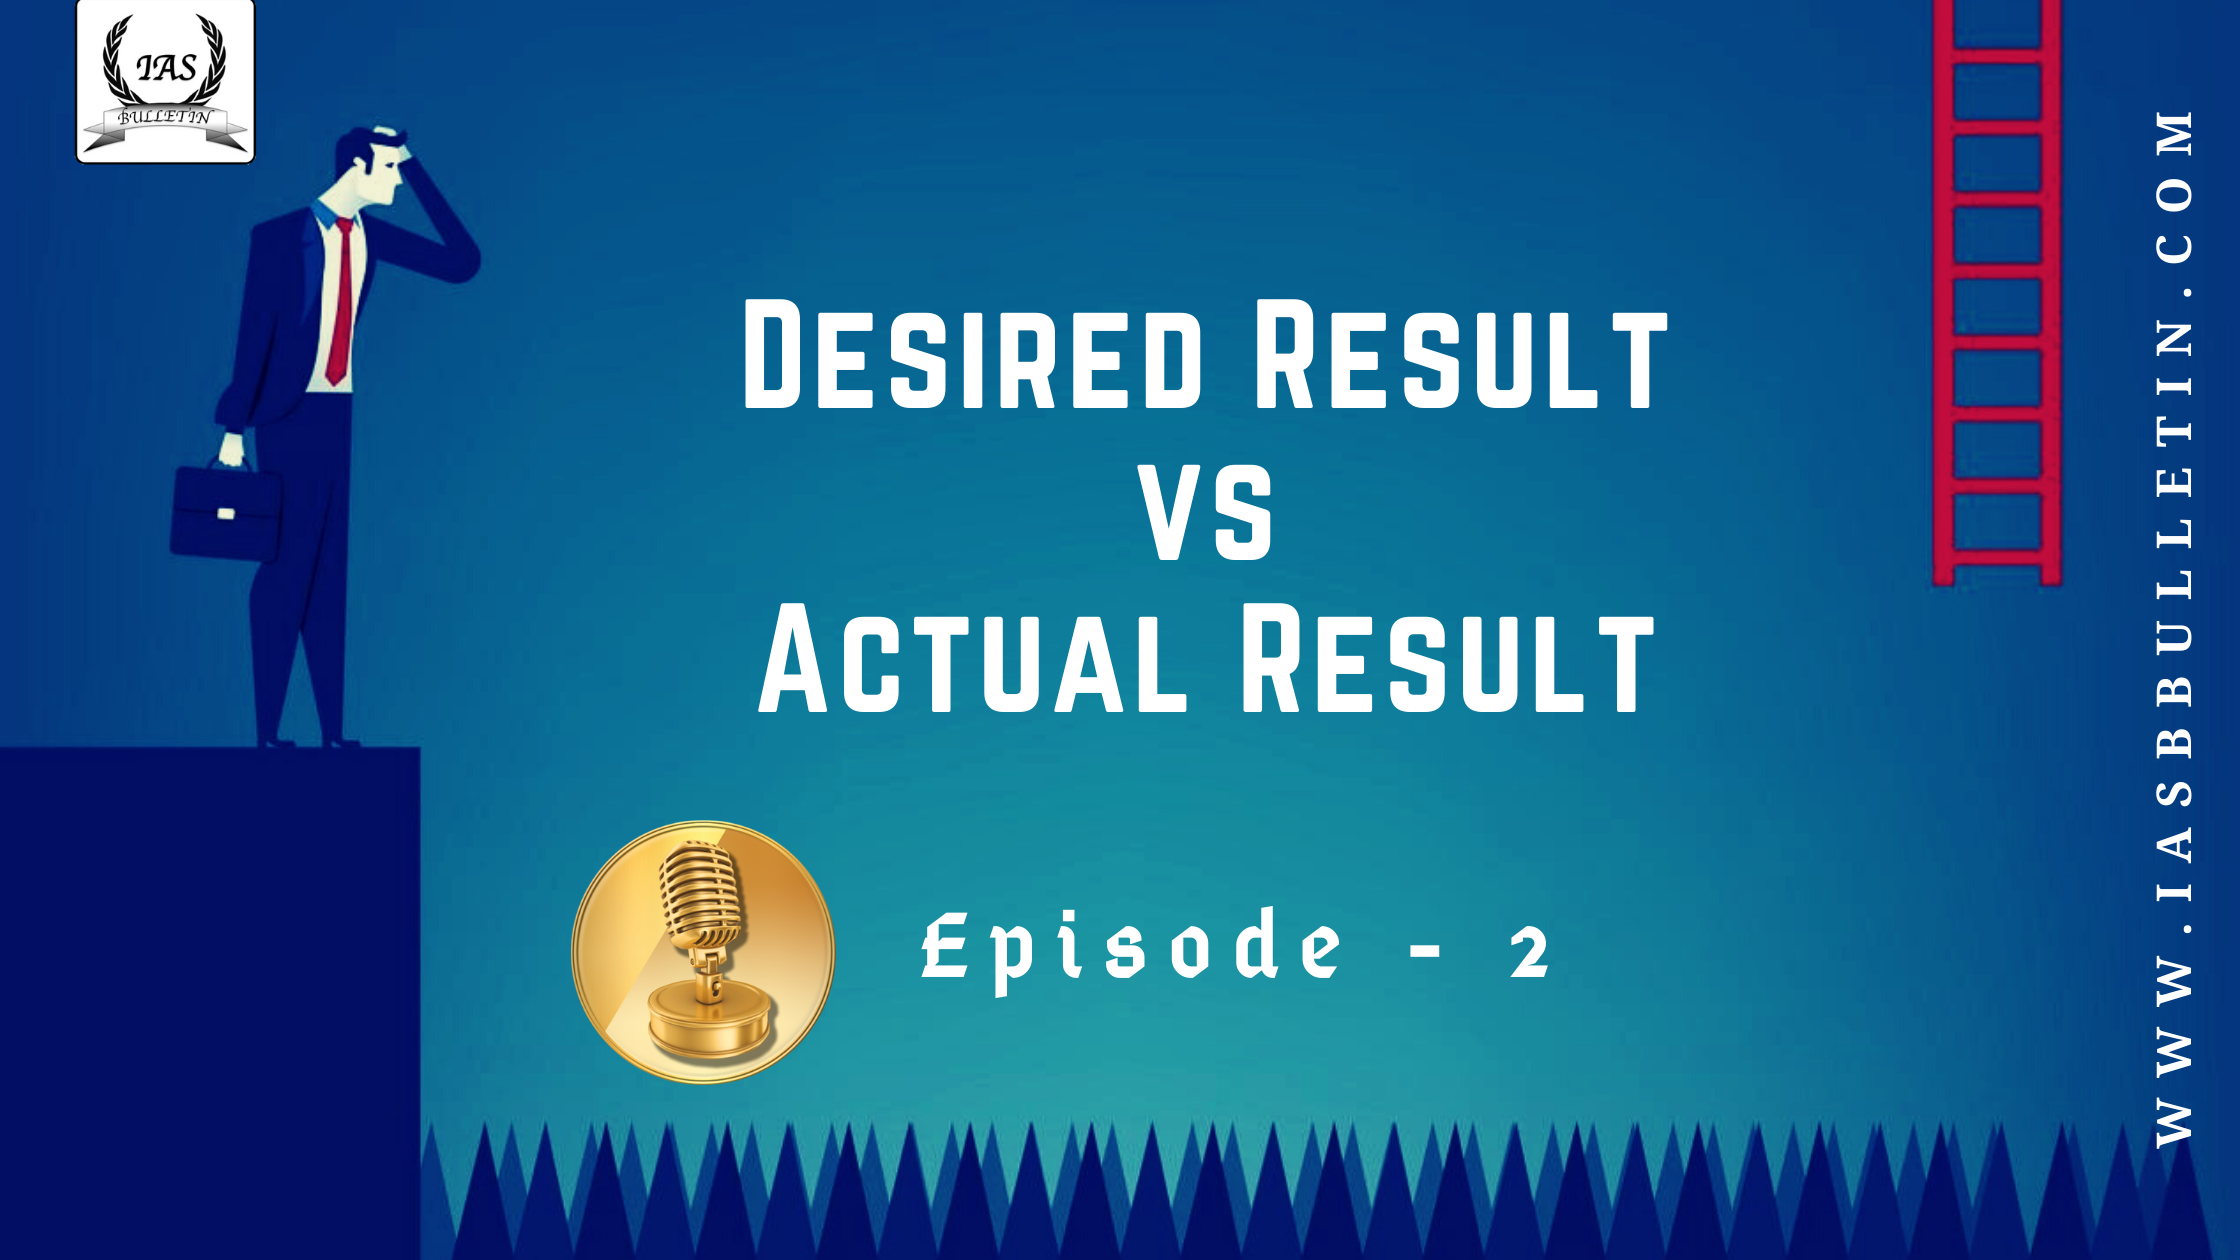 Desired vs Actual Result